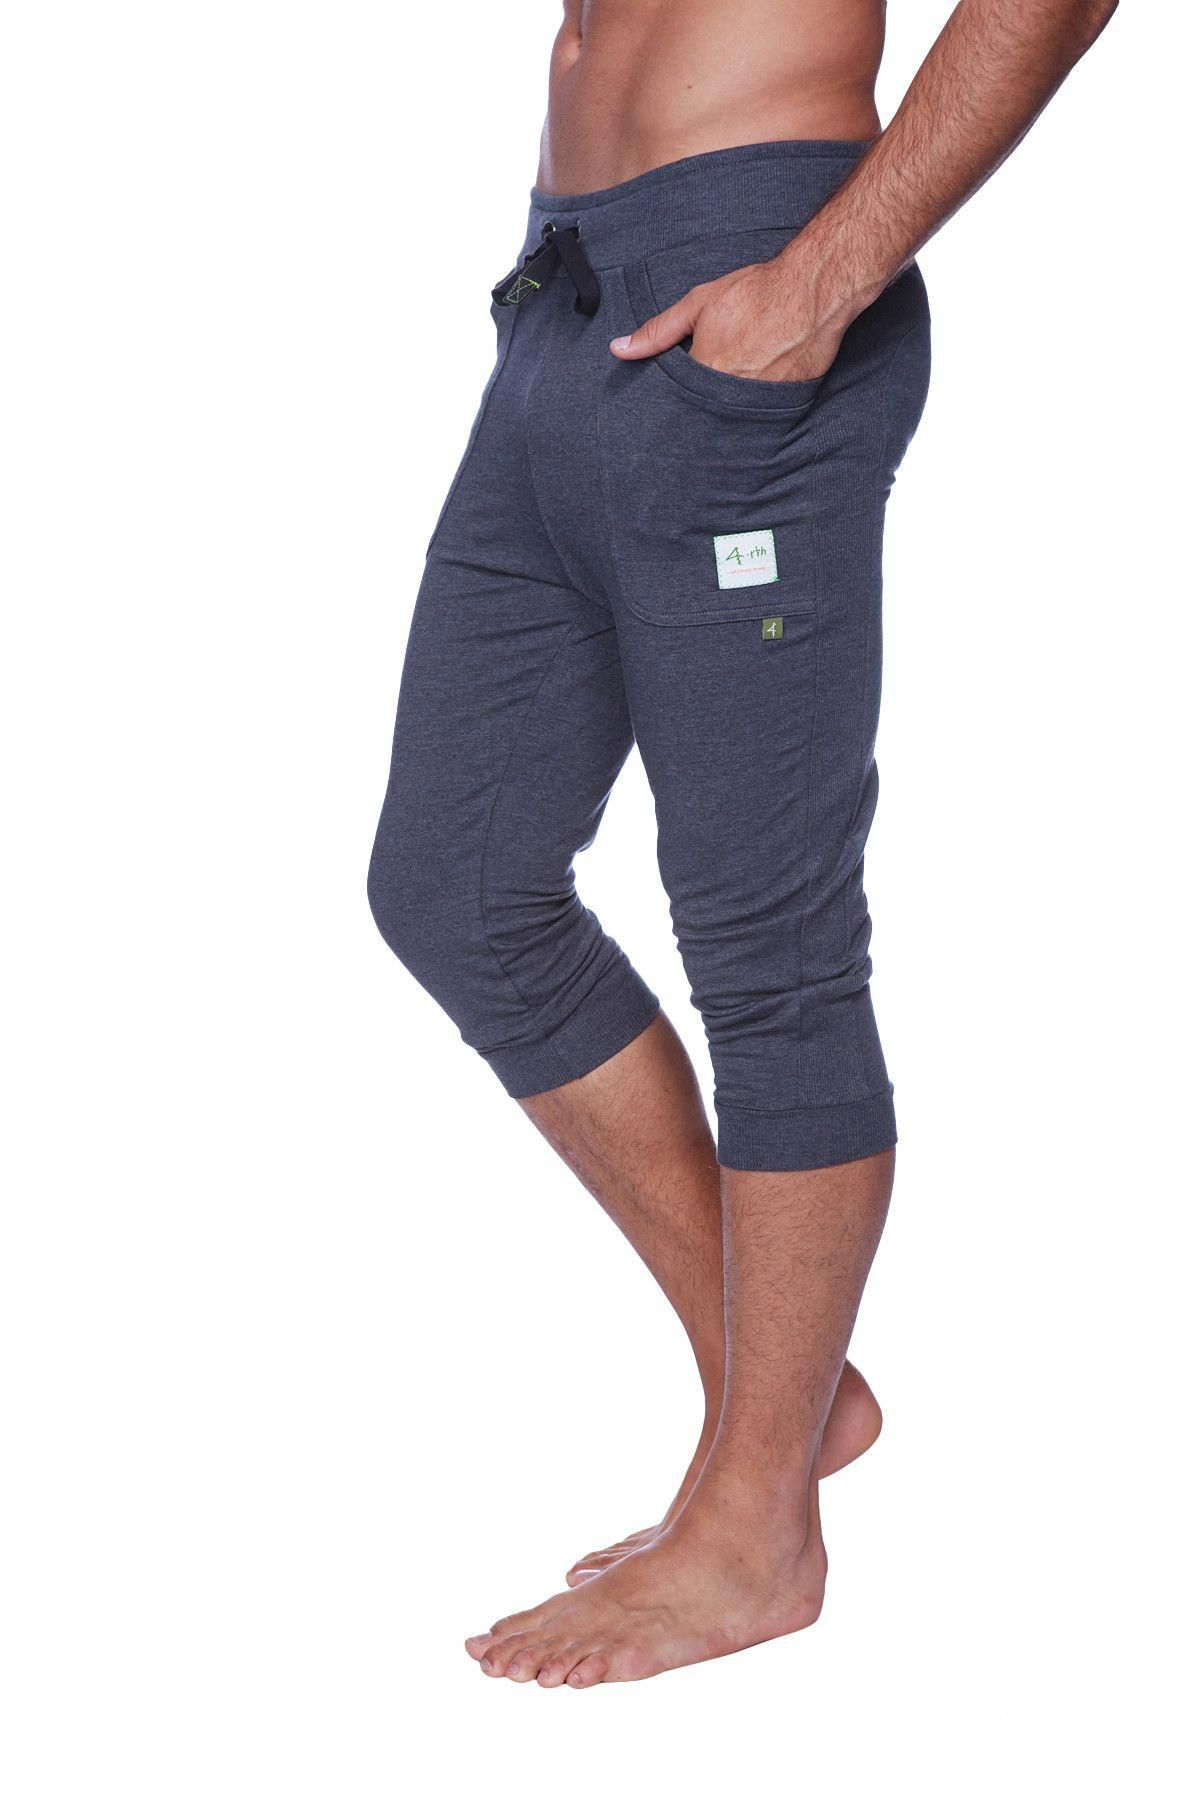 9eb9197672 Mens Cuffed Yoga Pants (Solid Charcoal) #YogaPants | Yoga Pants in ...